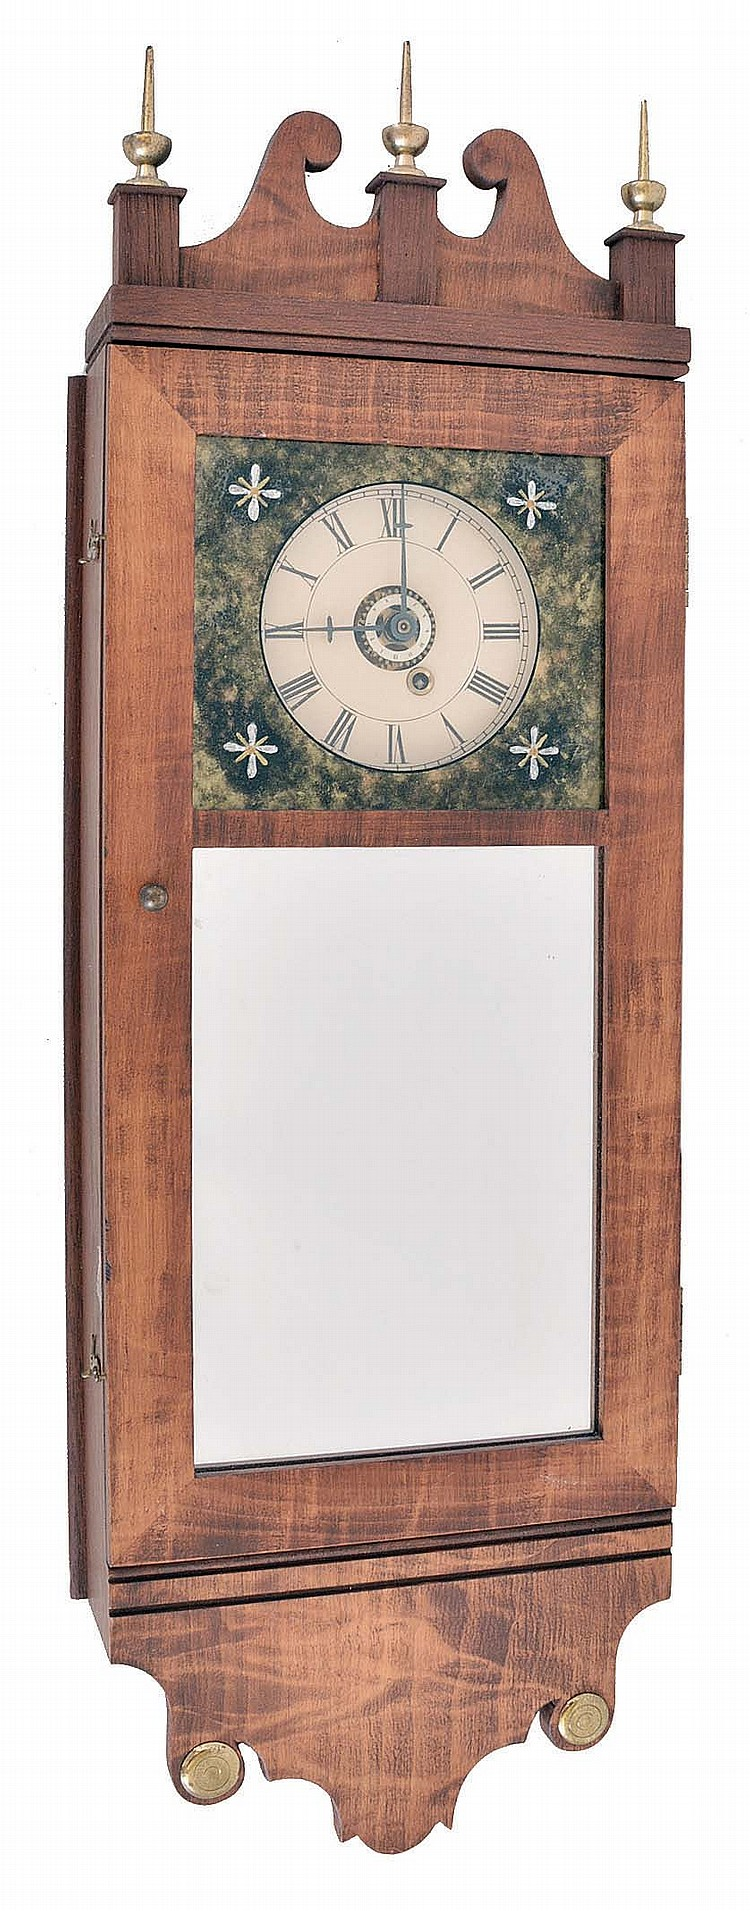 Michael Paul, Berea, Ohio, 30 hour, weight brass movement with weight alarm miniature timepiece copy of a New Hampshire mirror clock. This example is number 9 of 15.